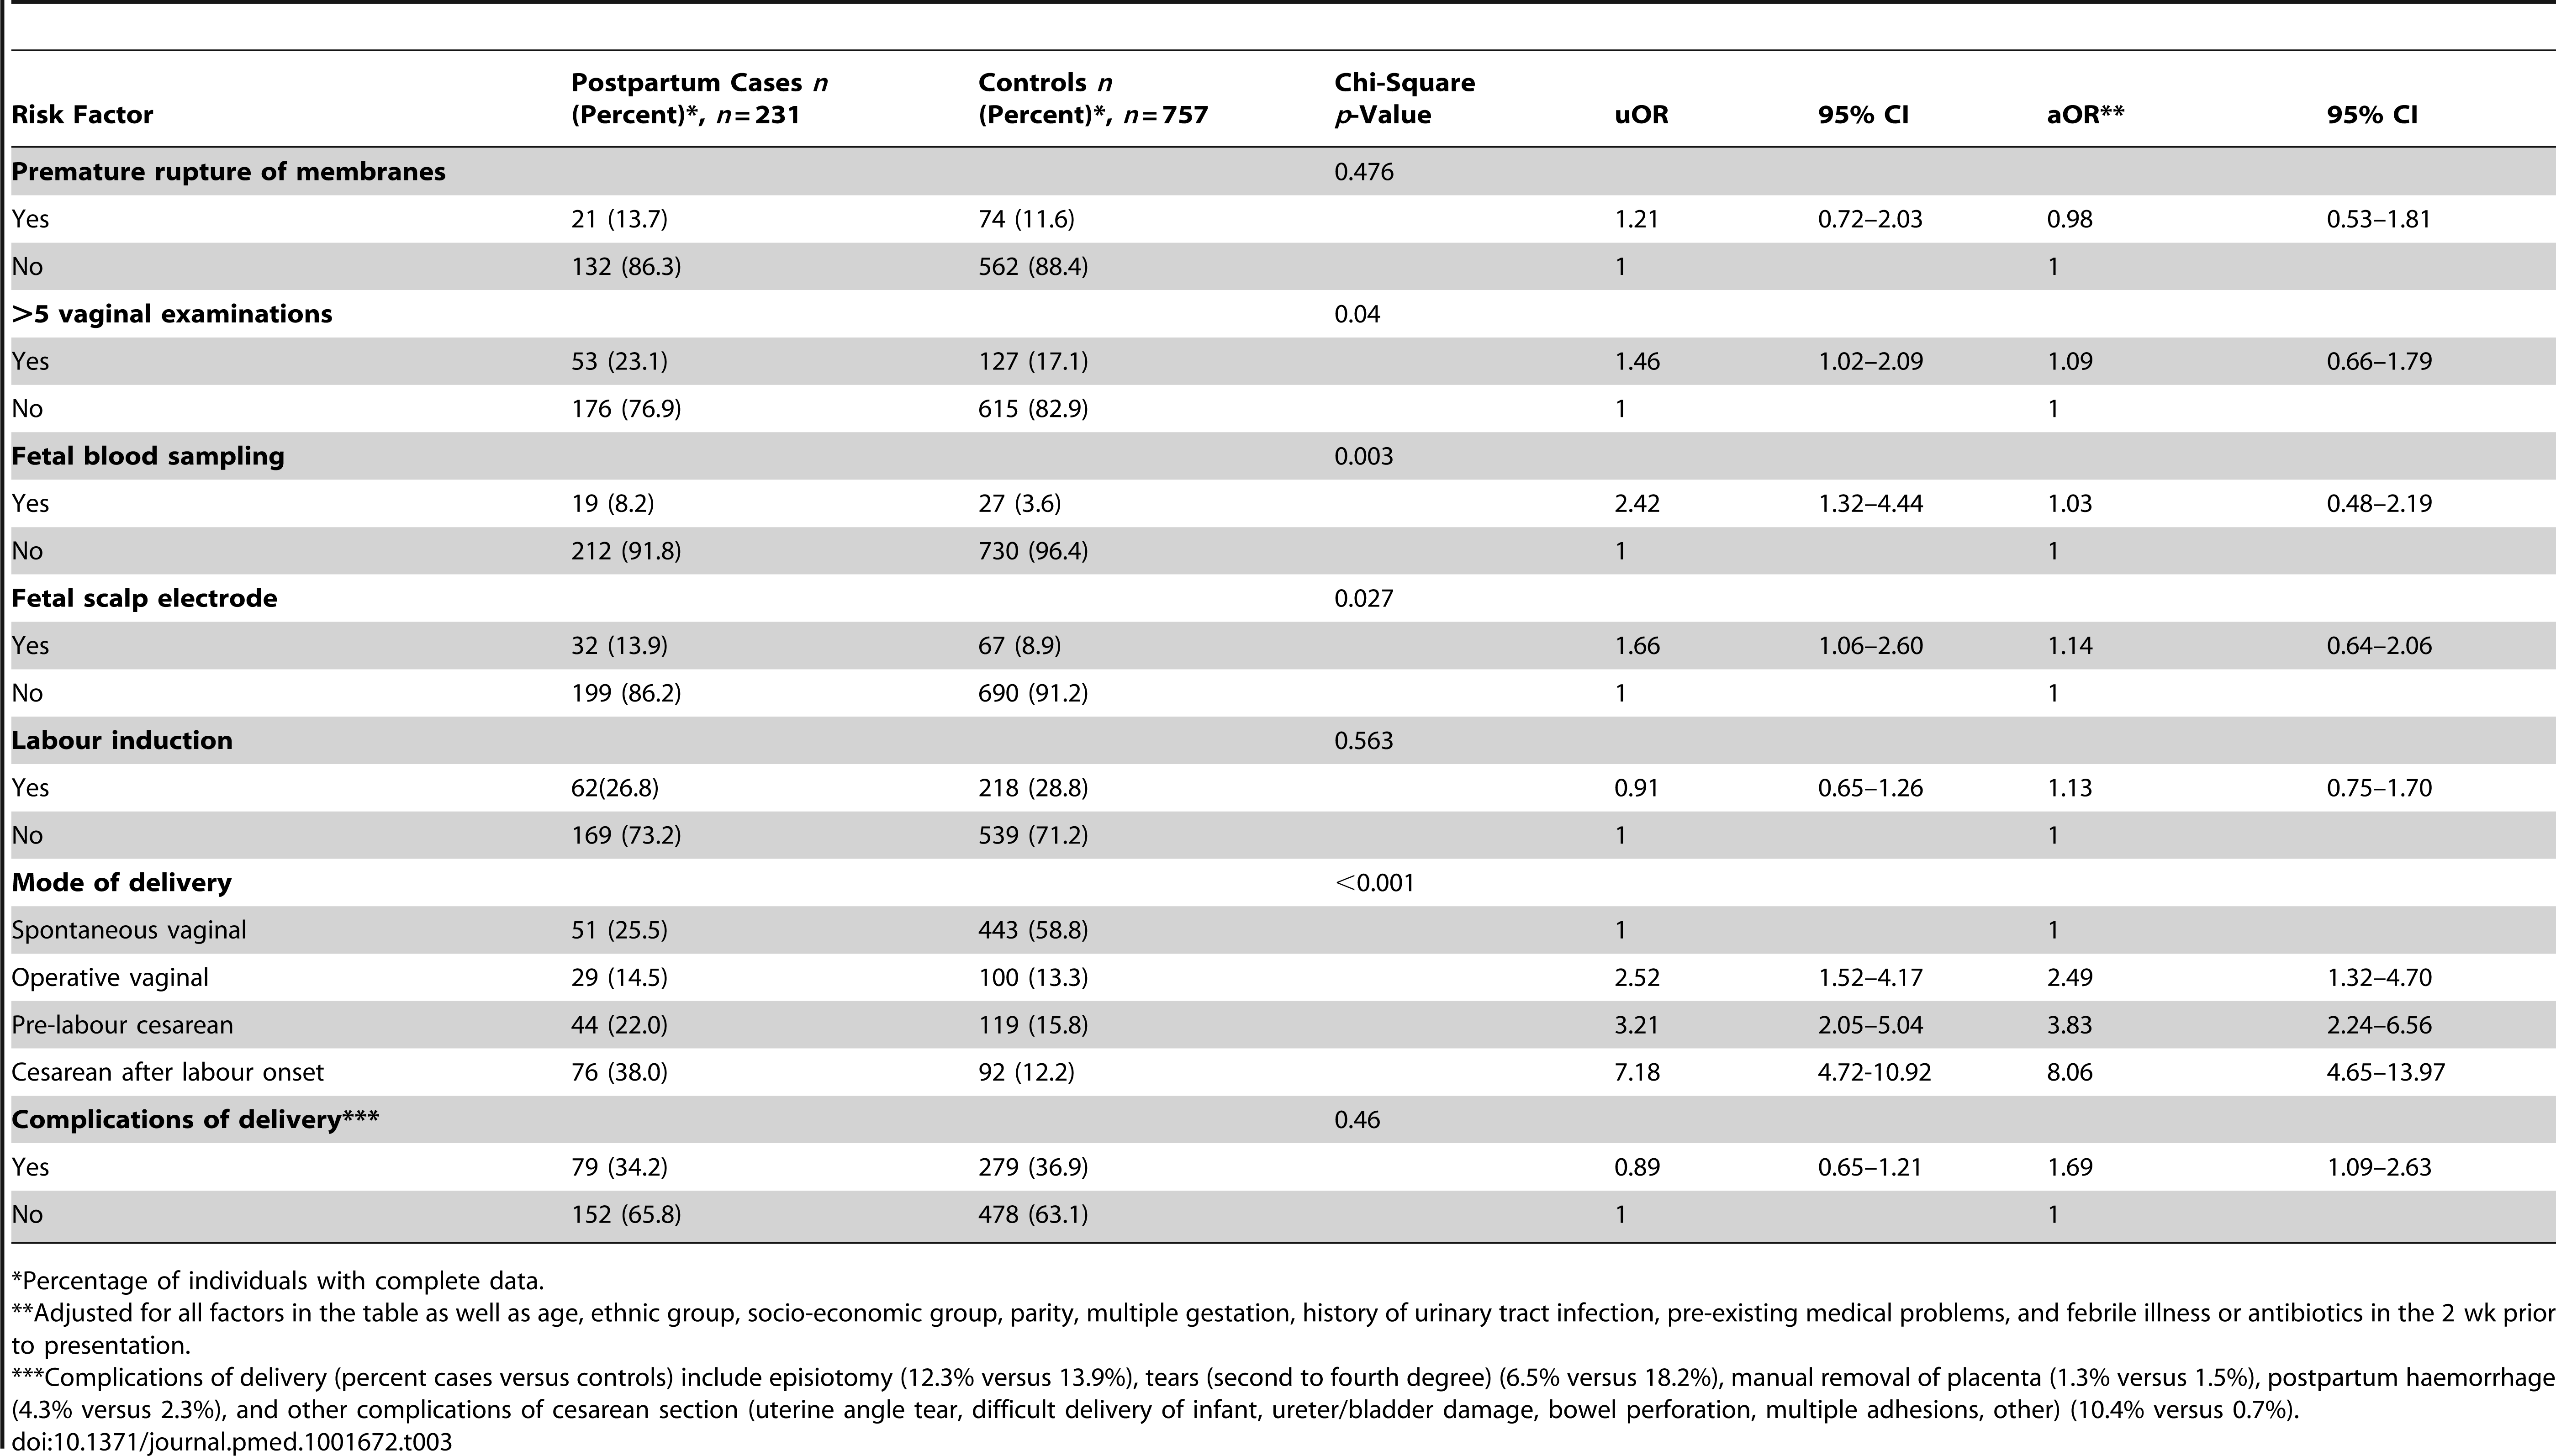 Unadjusted and adjusted odds ratios for severe sepsis associated with delivery factors in postpartum cases compared with controls.